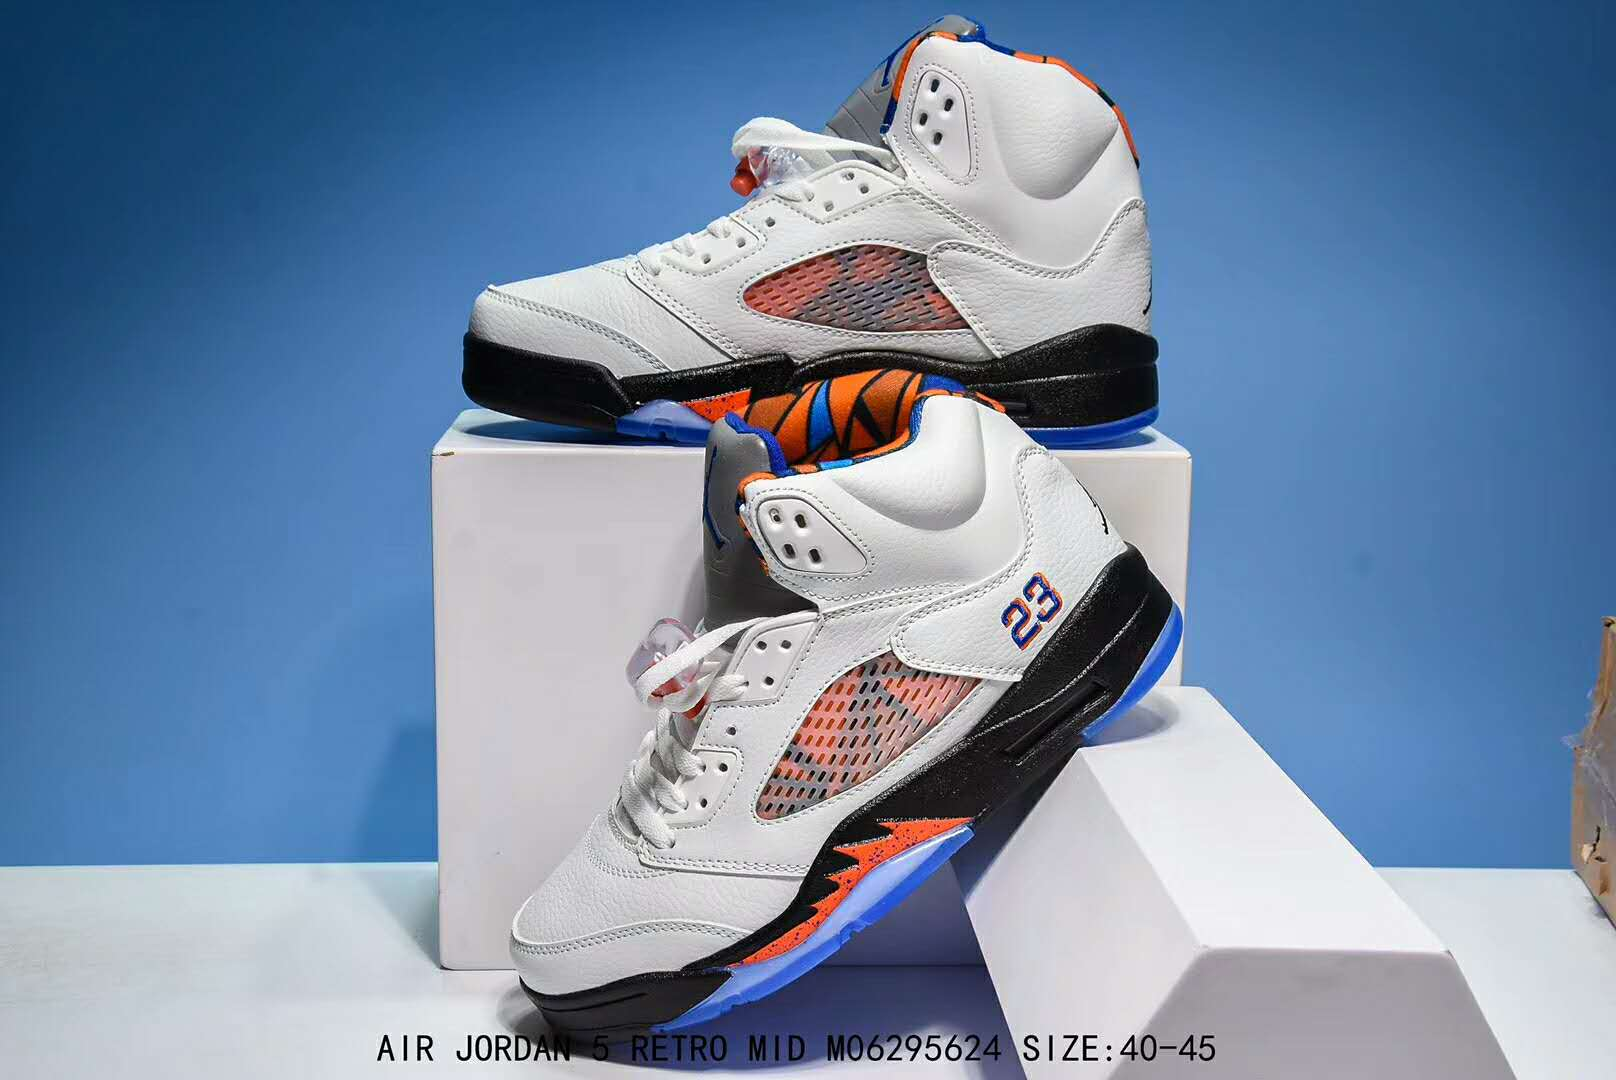 New Air Jordan 5 Retro White Blue Orange Shoes